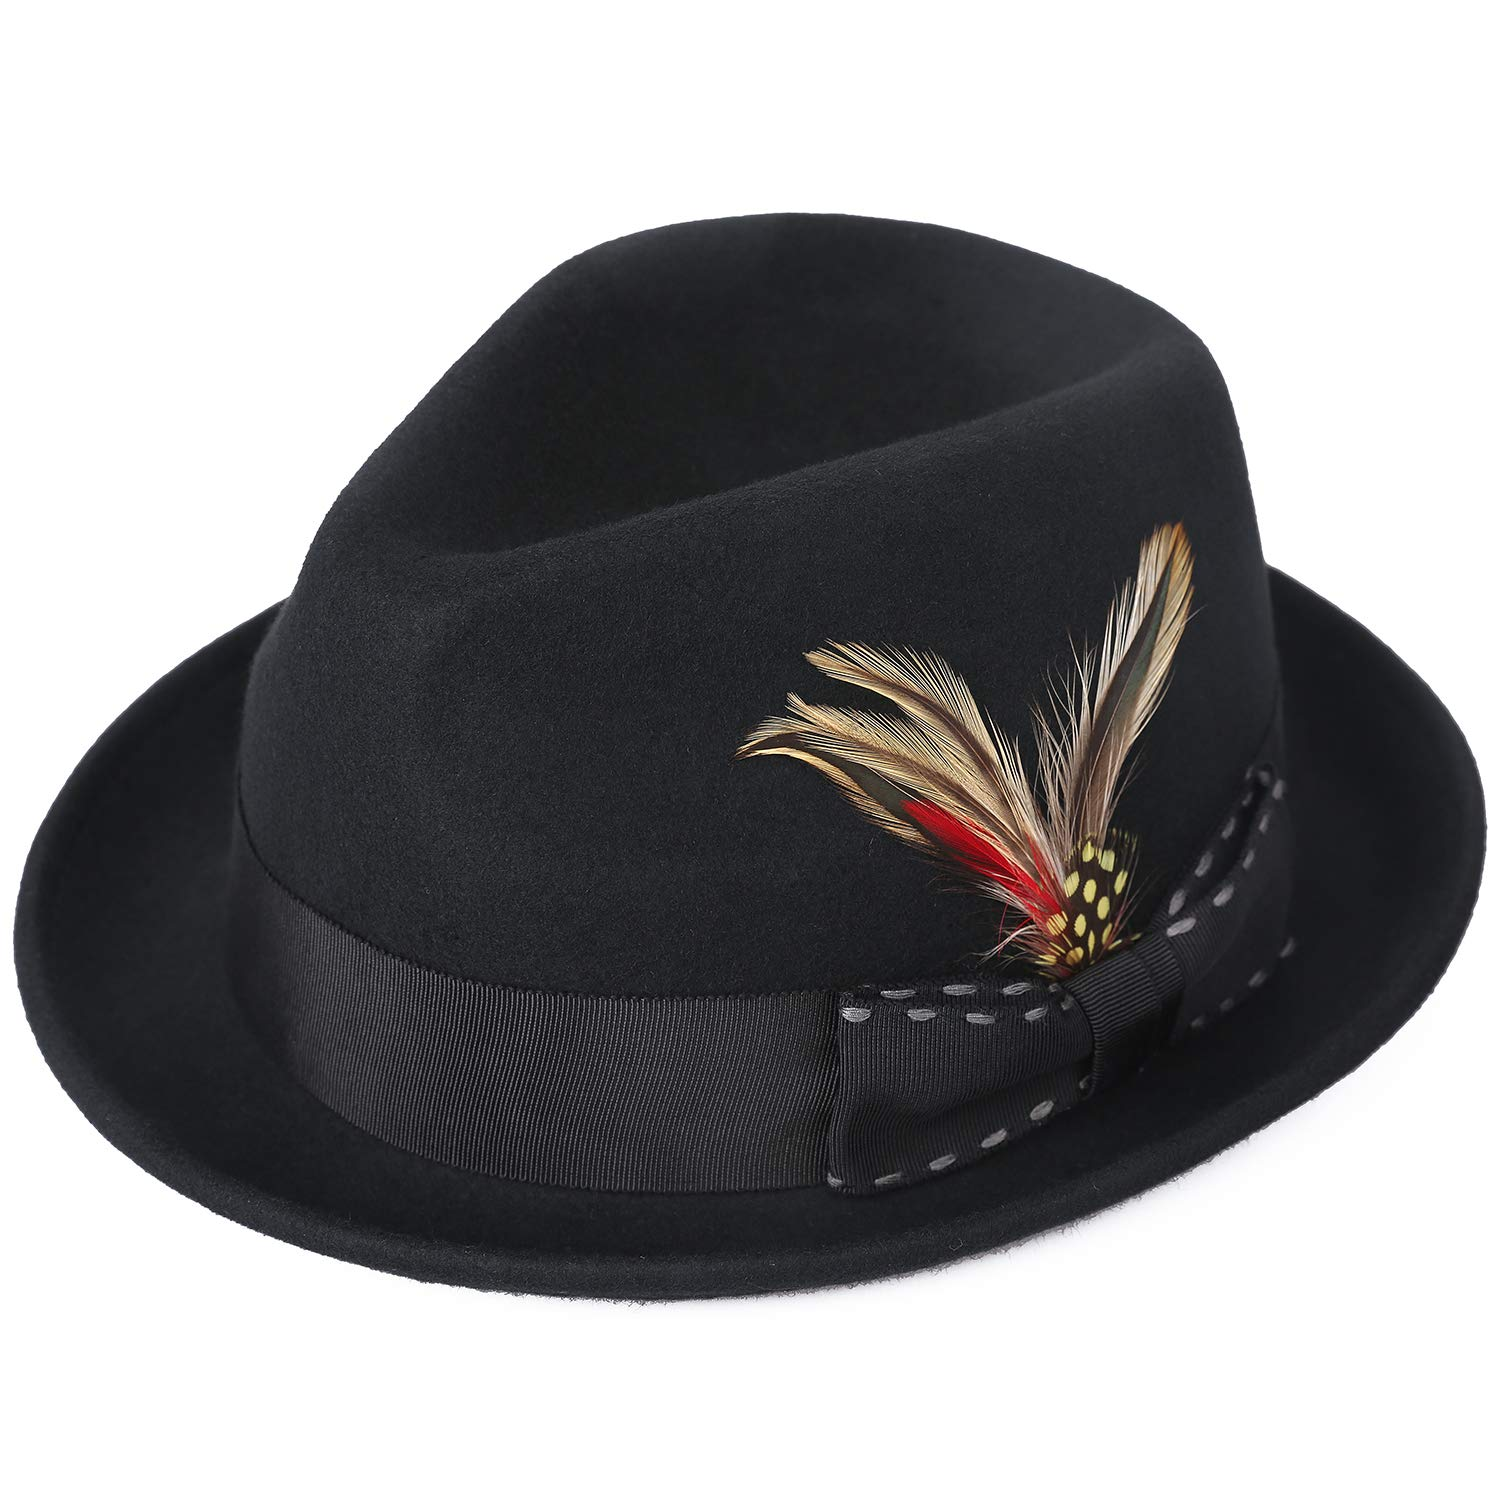 0f498898db1f4 Janetshats Unisex Classic Fedora Hats Wool Felt Trilby Hat with Bowknot  Feather Black  Amazon.ca  Clothing   Accessories